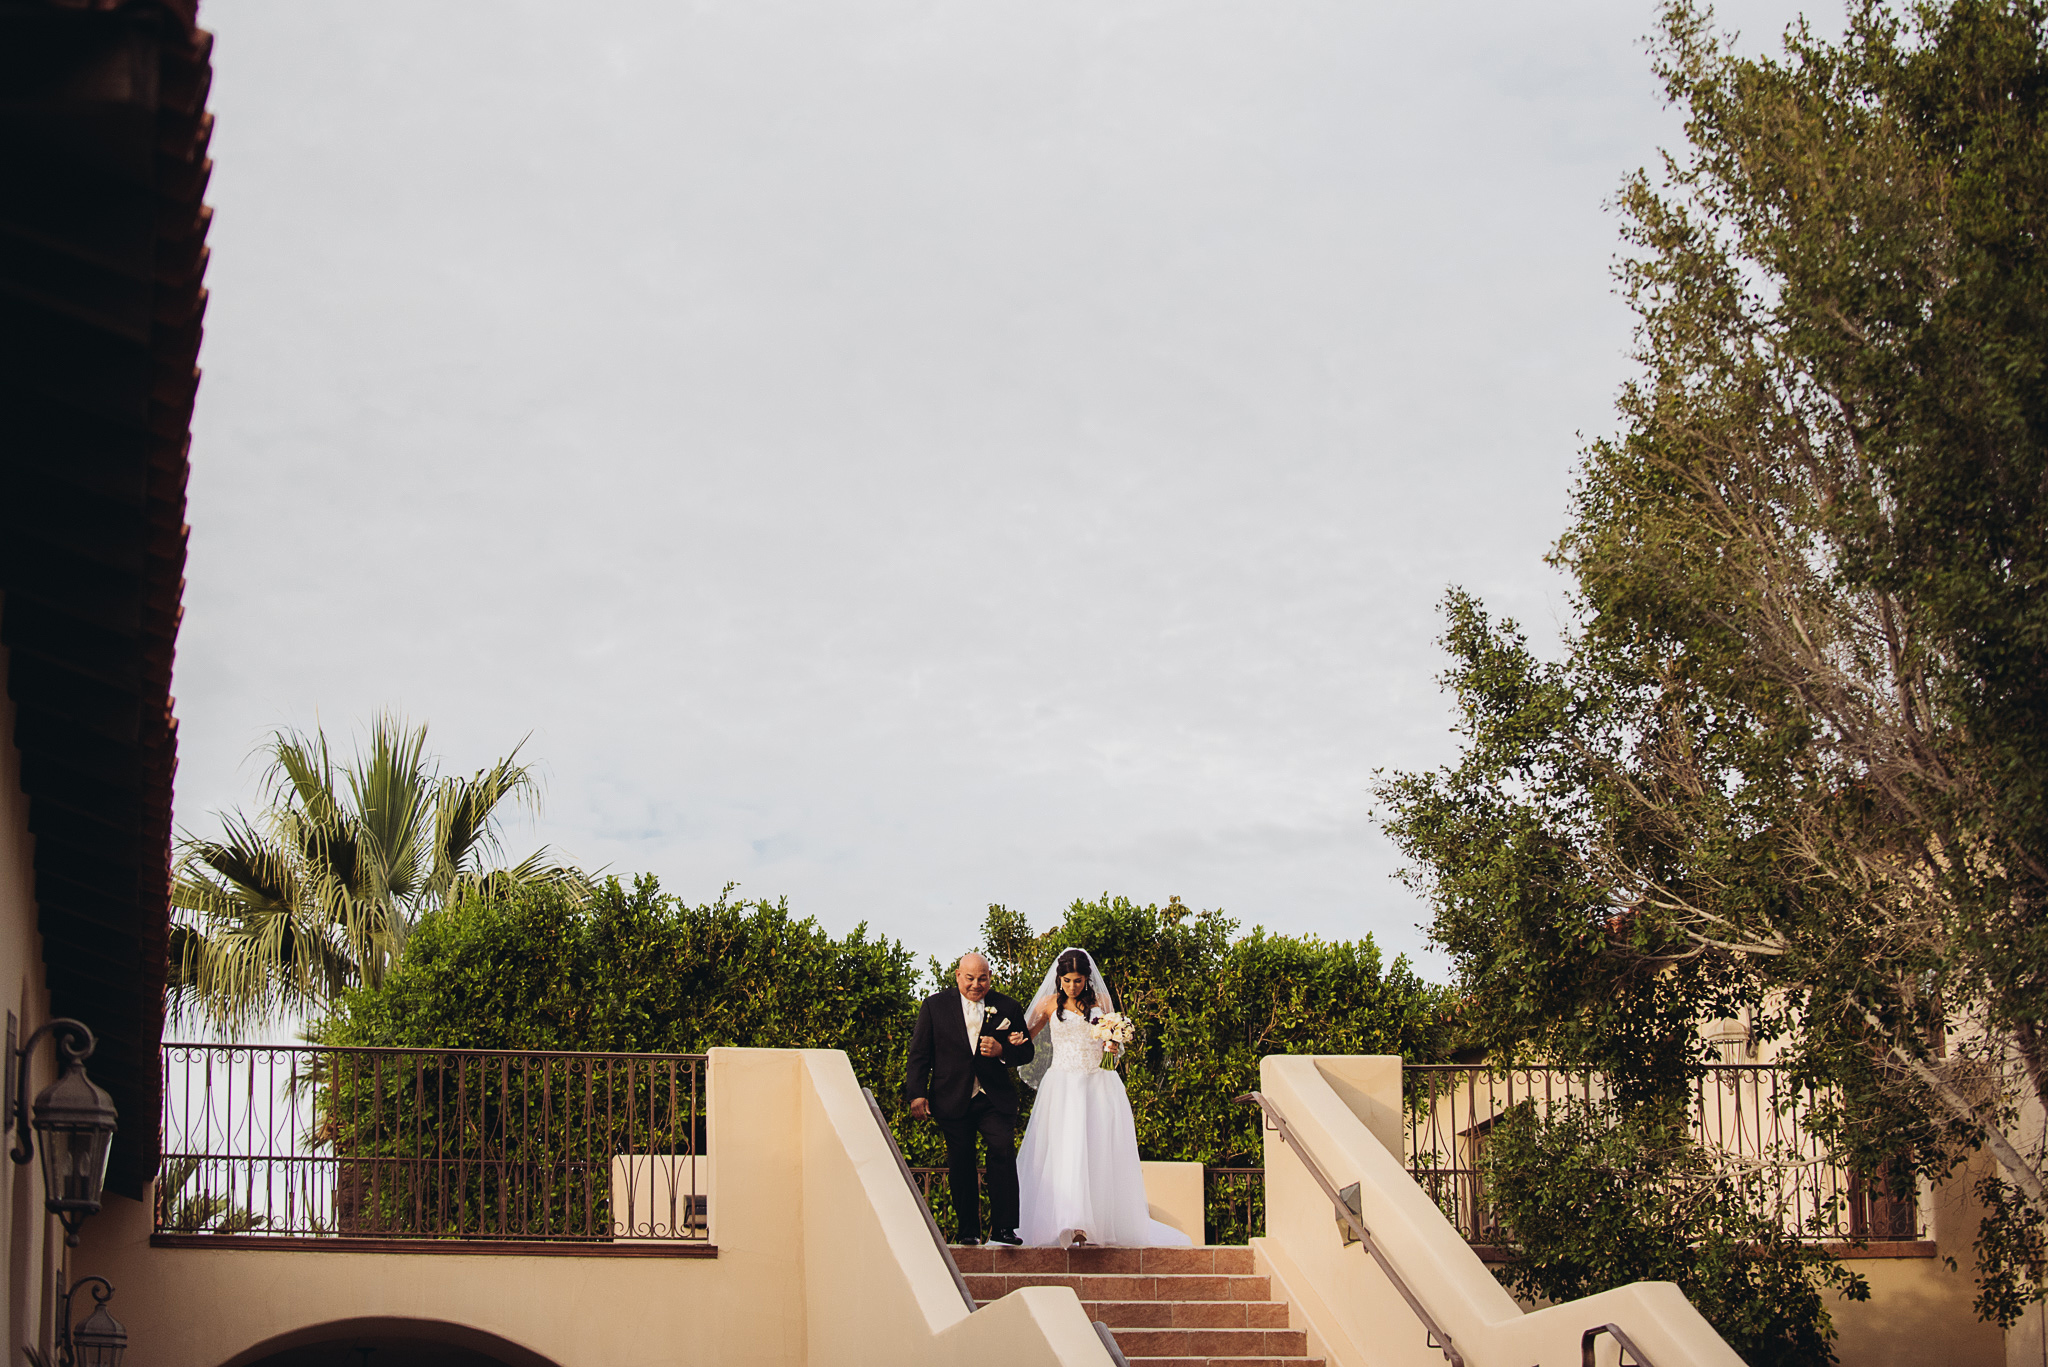 wedding-photography-az-andrew-ybanez-elemental-fotos-gilbert-arizona-5.jpg